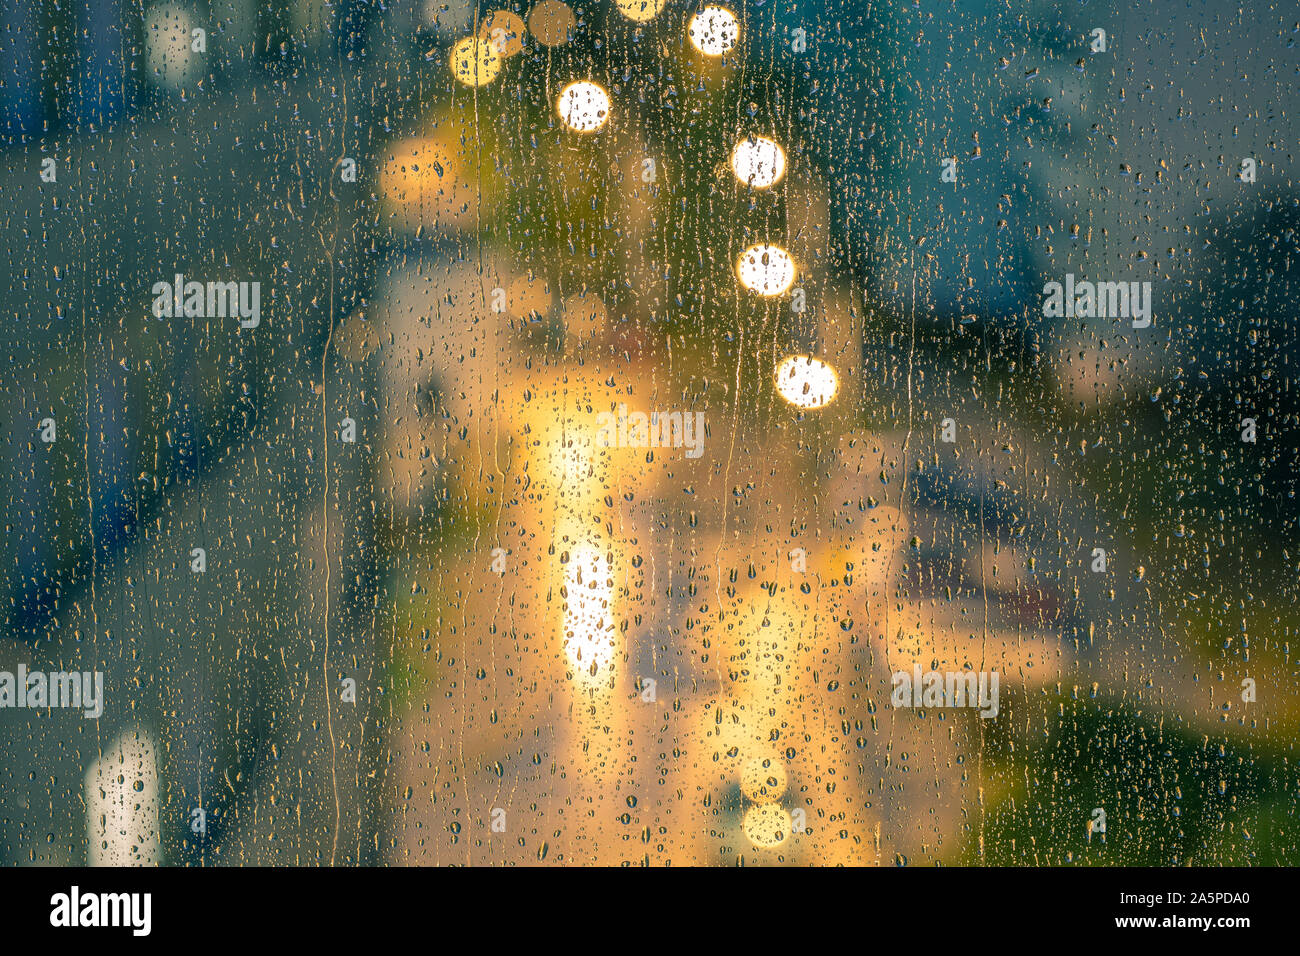 Water drops on the window pane, glass. Lights of the city. Bokeh - abstract background. Stock Photo